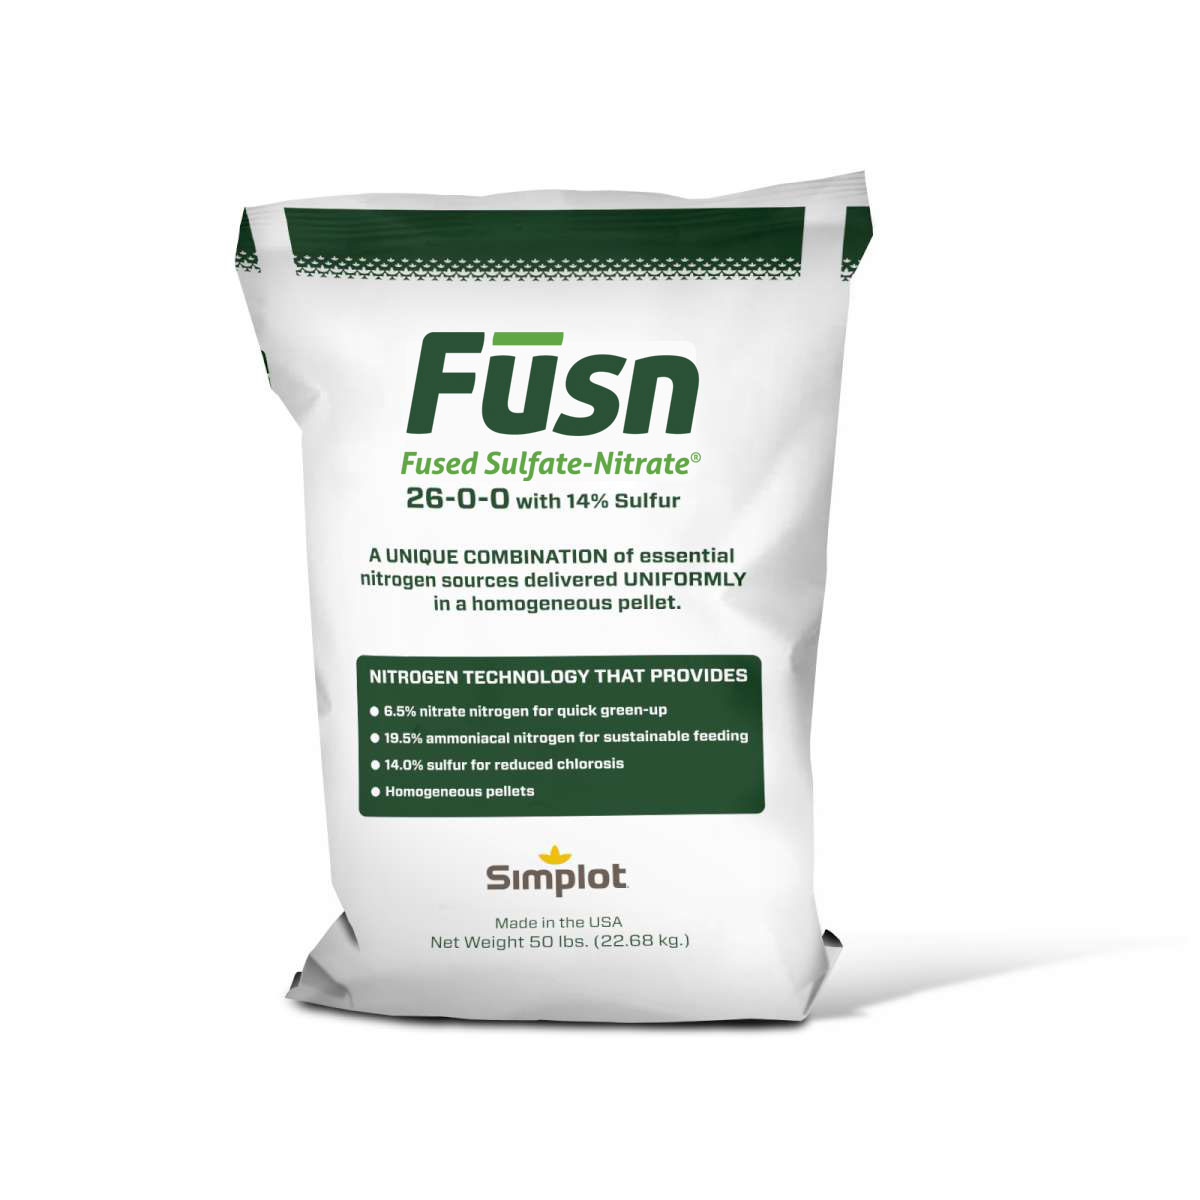 FUSN-Sulfate-Product-Image